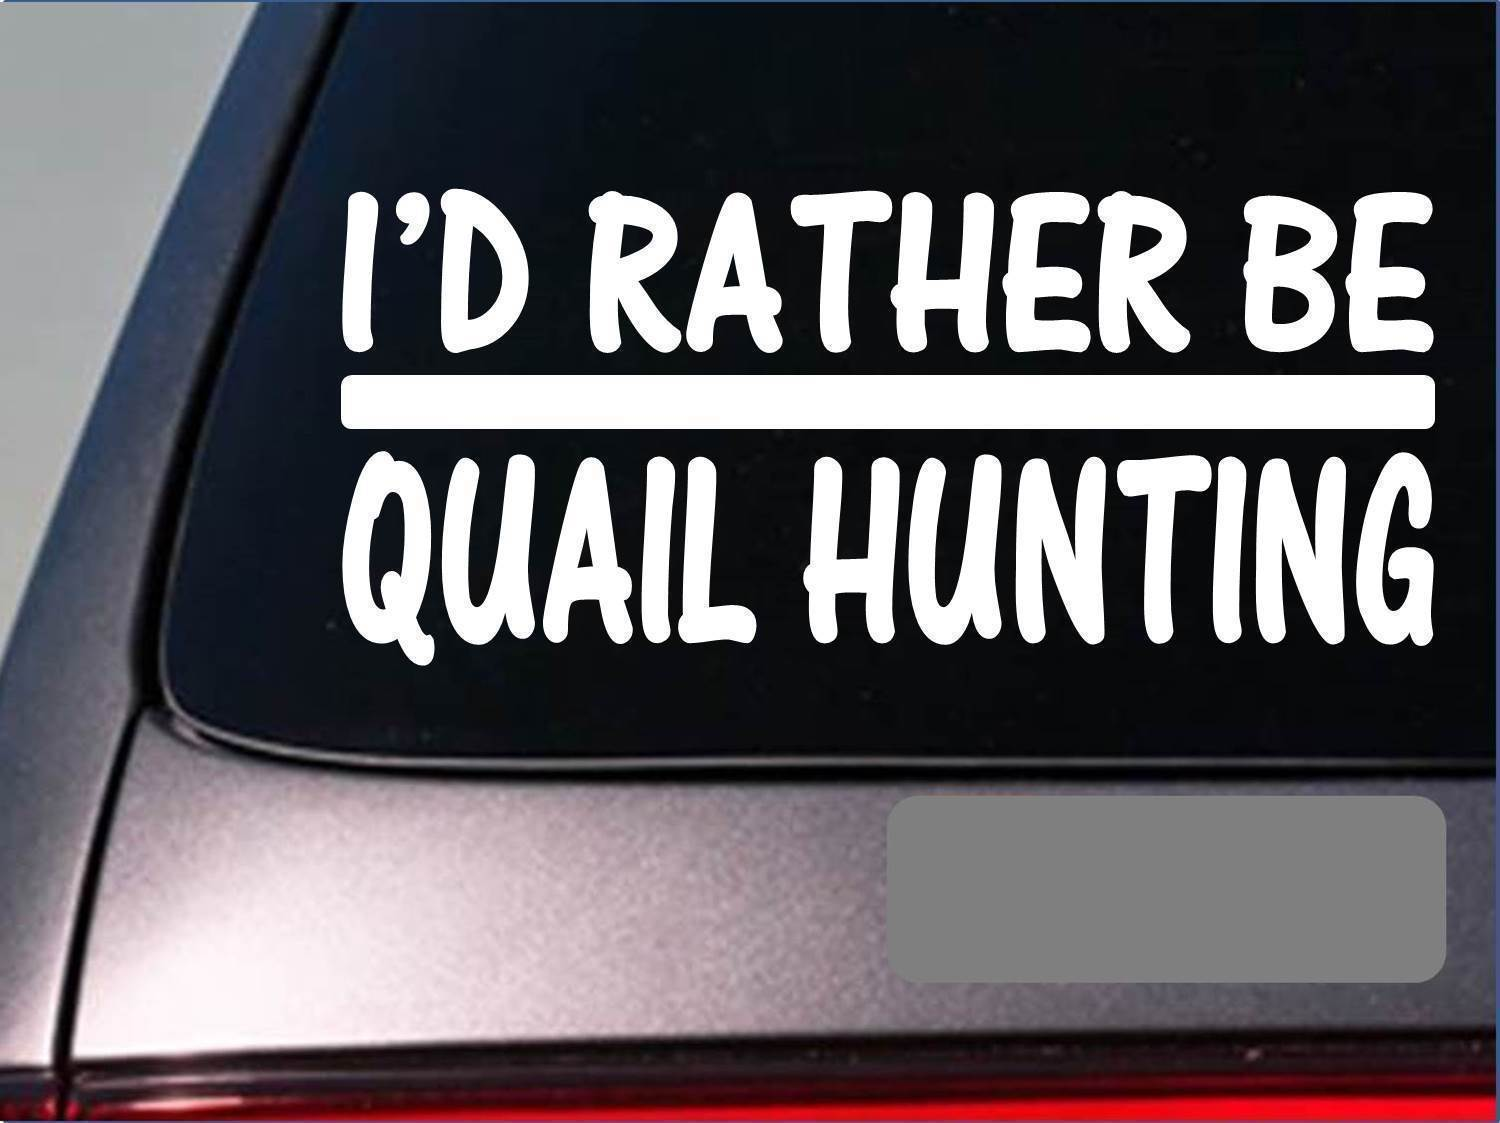 I'd Rather be Quail Hunting *H742* 8 inch Sticker decal camo shells trap scent